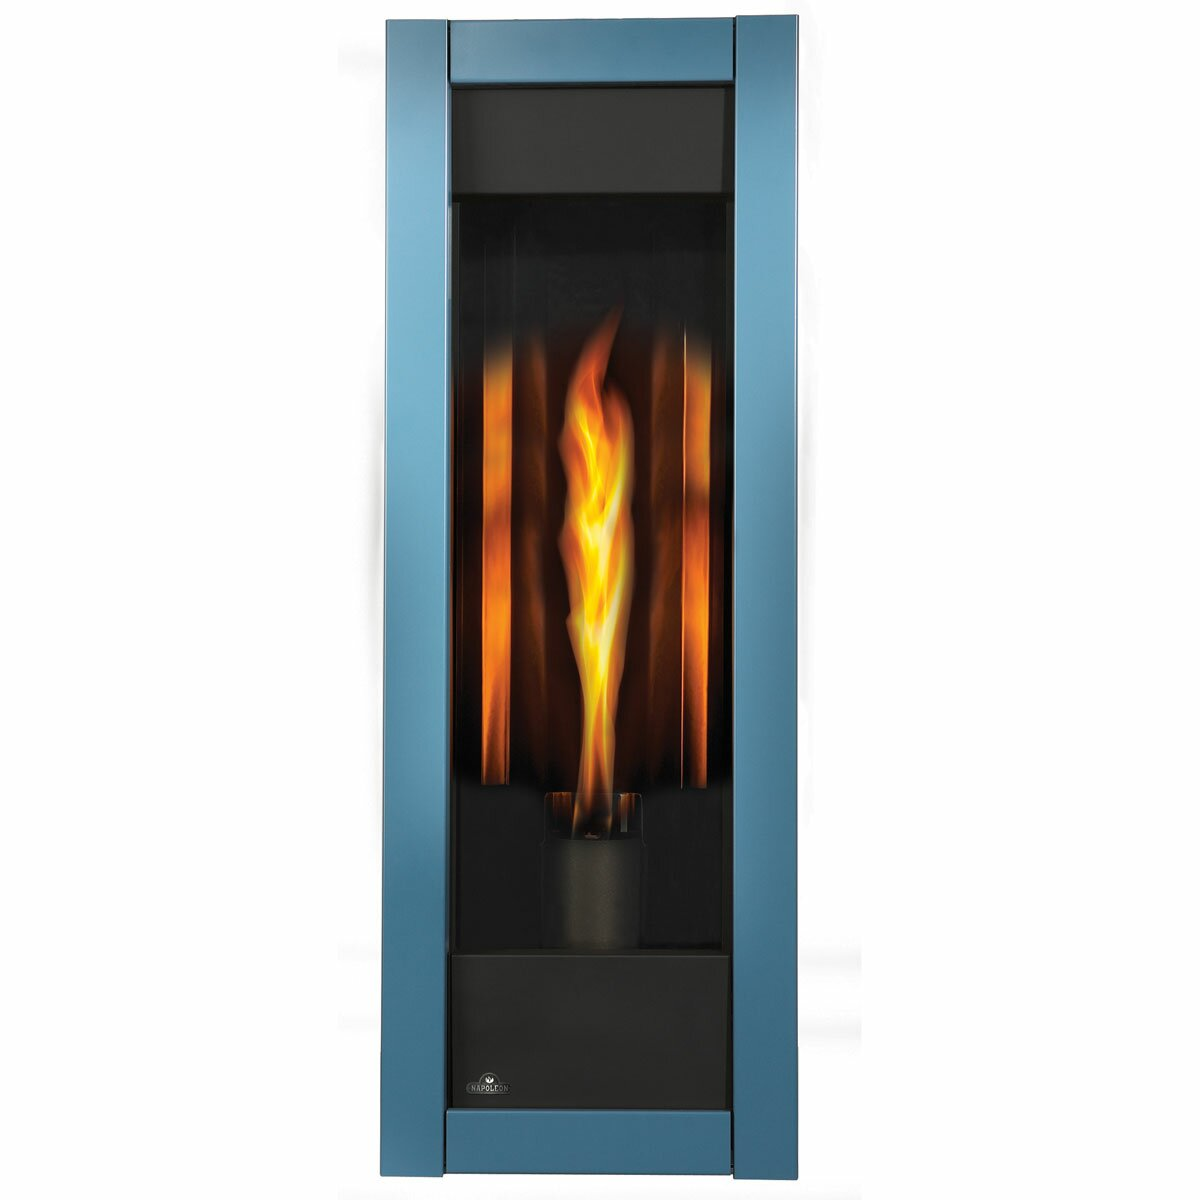 Napoleon The Torch Direct Vent Wall Mount Gas Fireplace - Napoleon The Torch Direct Vent Wall Mount Gas Fireplace & Reviews